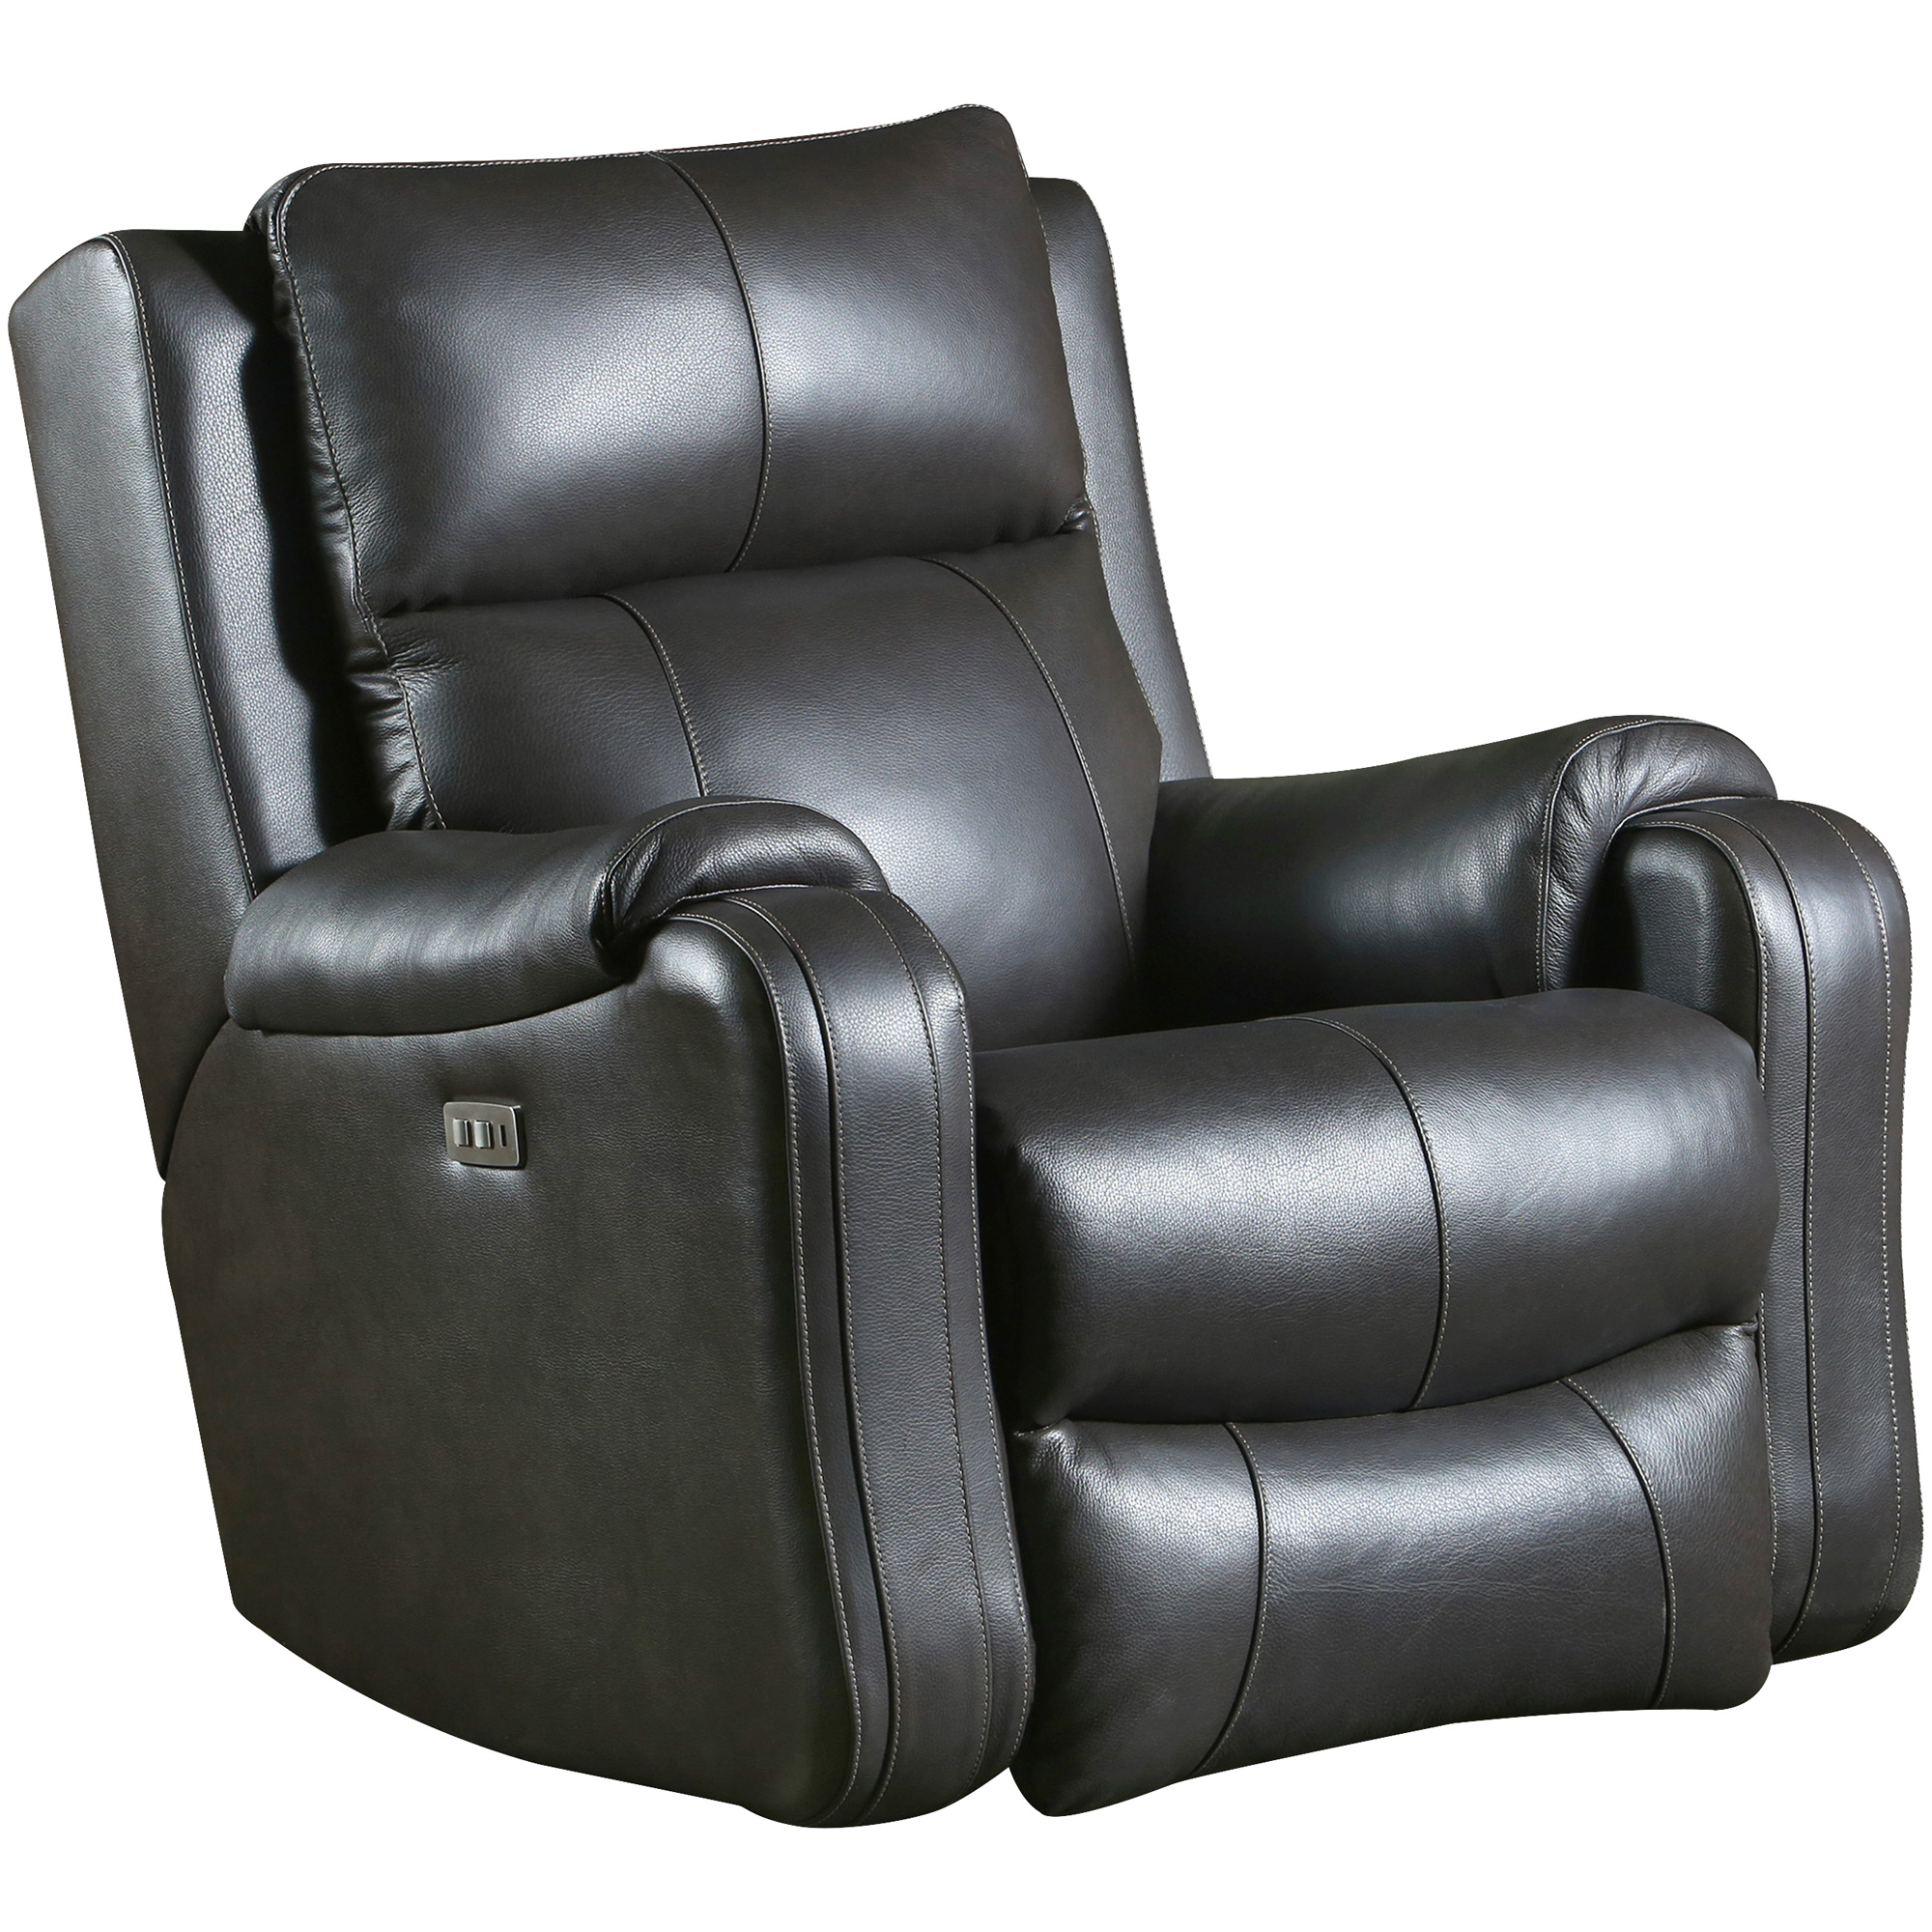 Southern Motion | Contour Leather Fossil Power+ Rocker Recliner Chair